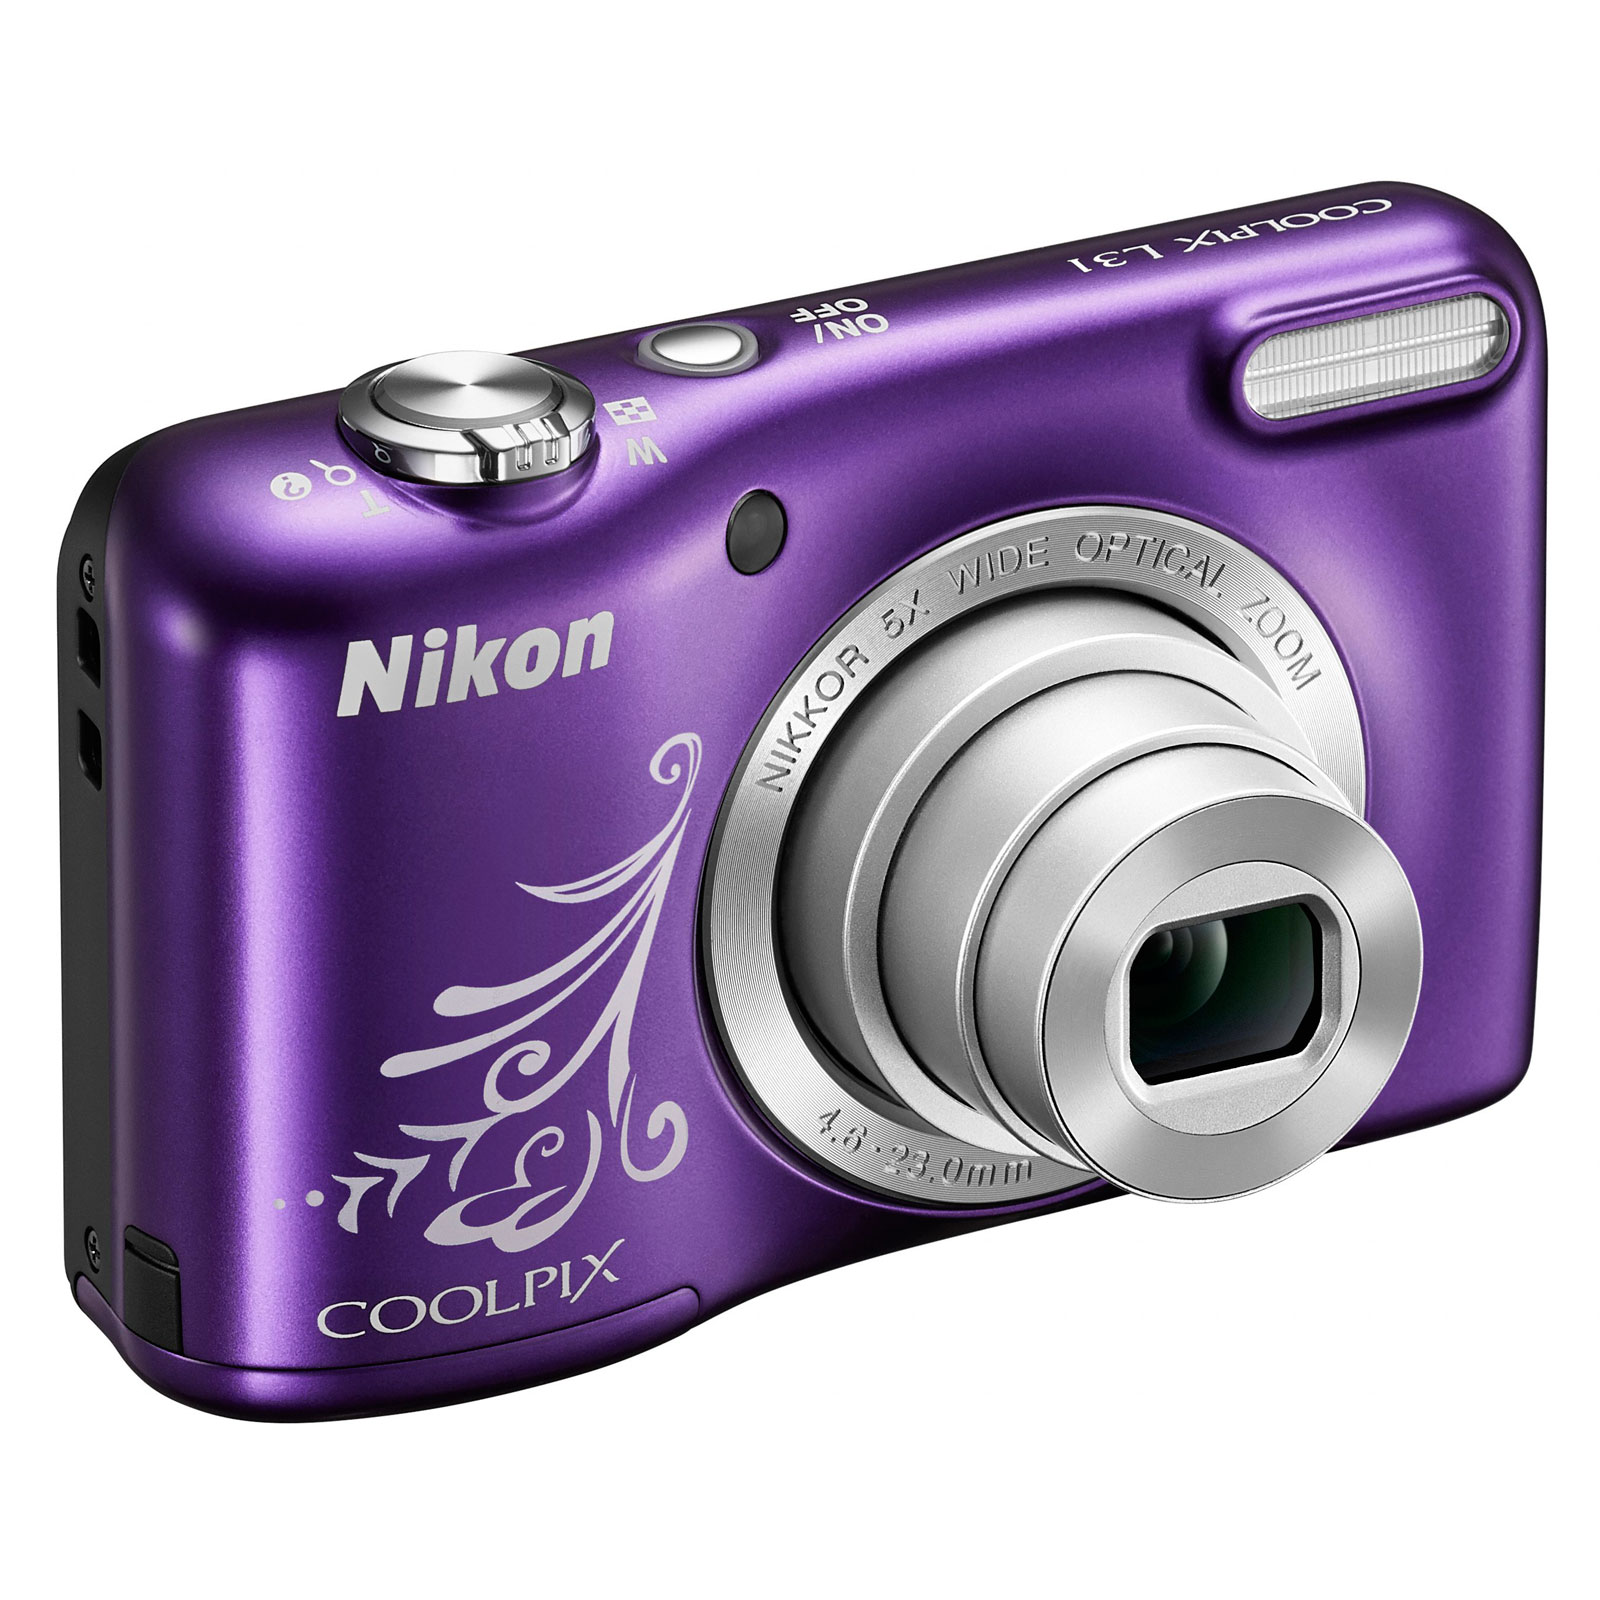 nikon coolpix l31 violet line art appareil photo. Black Bedroom Furniture Sets. Home Design Ideas